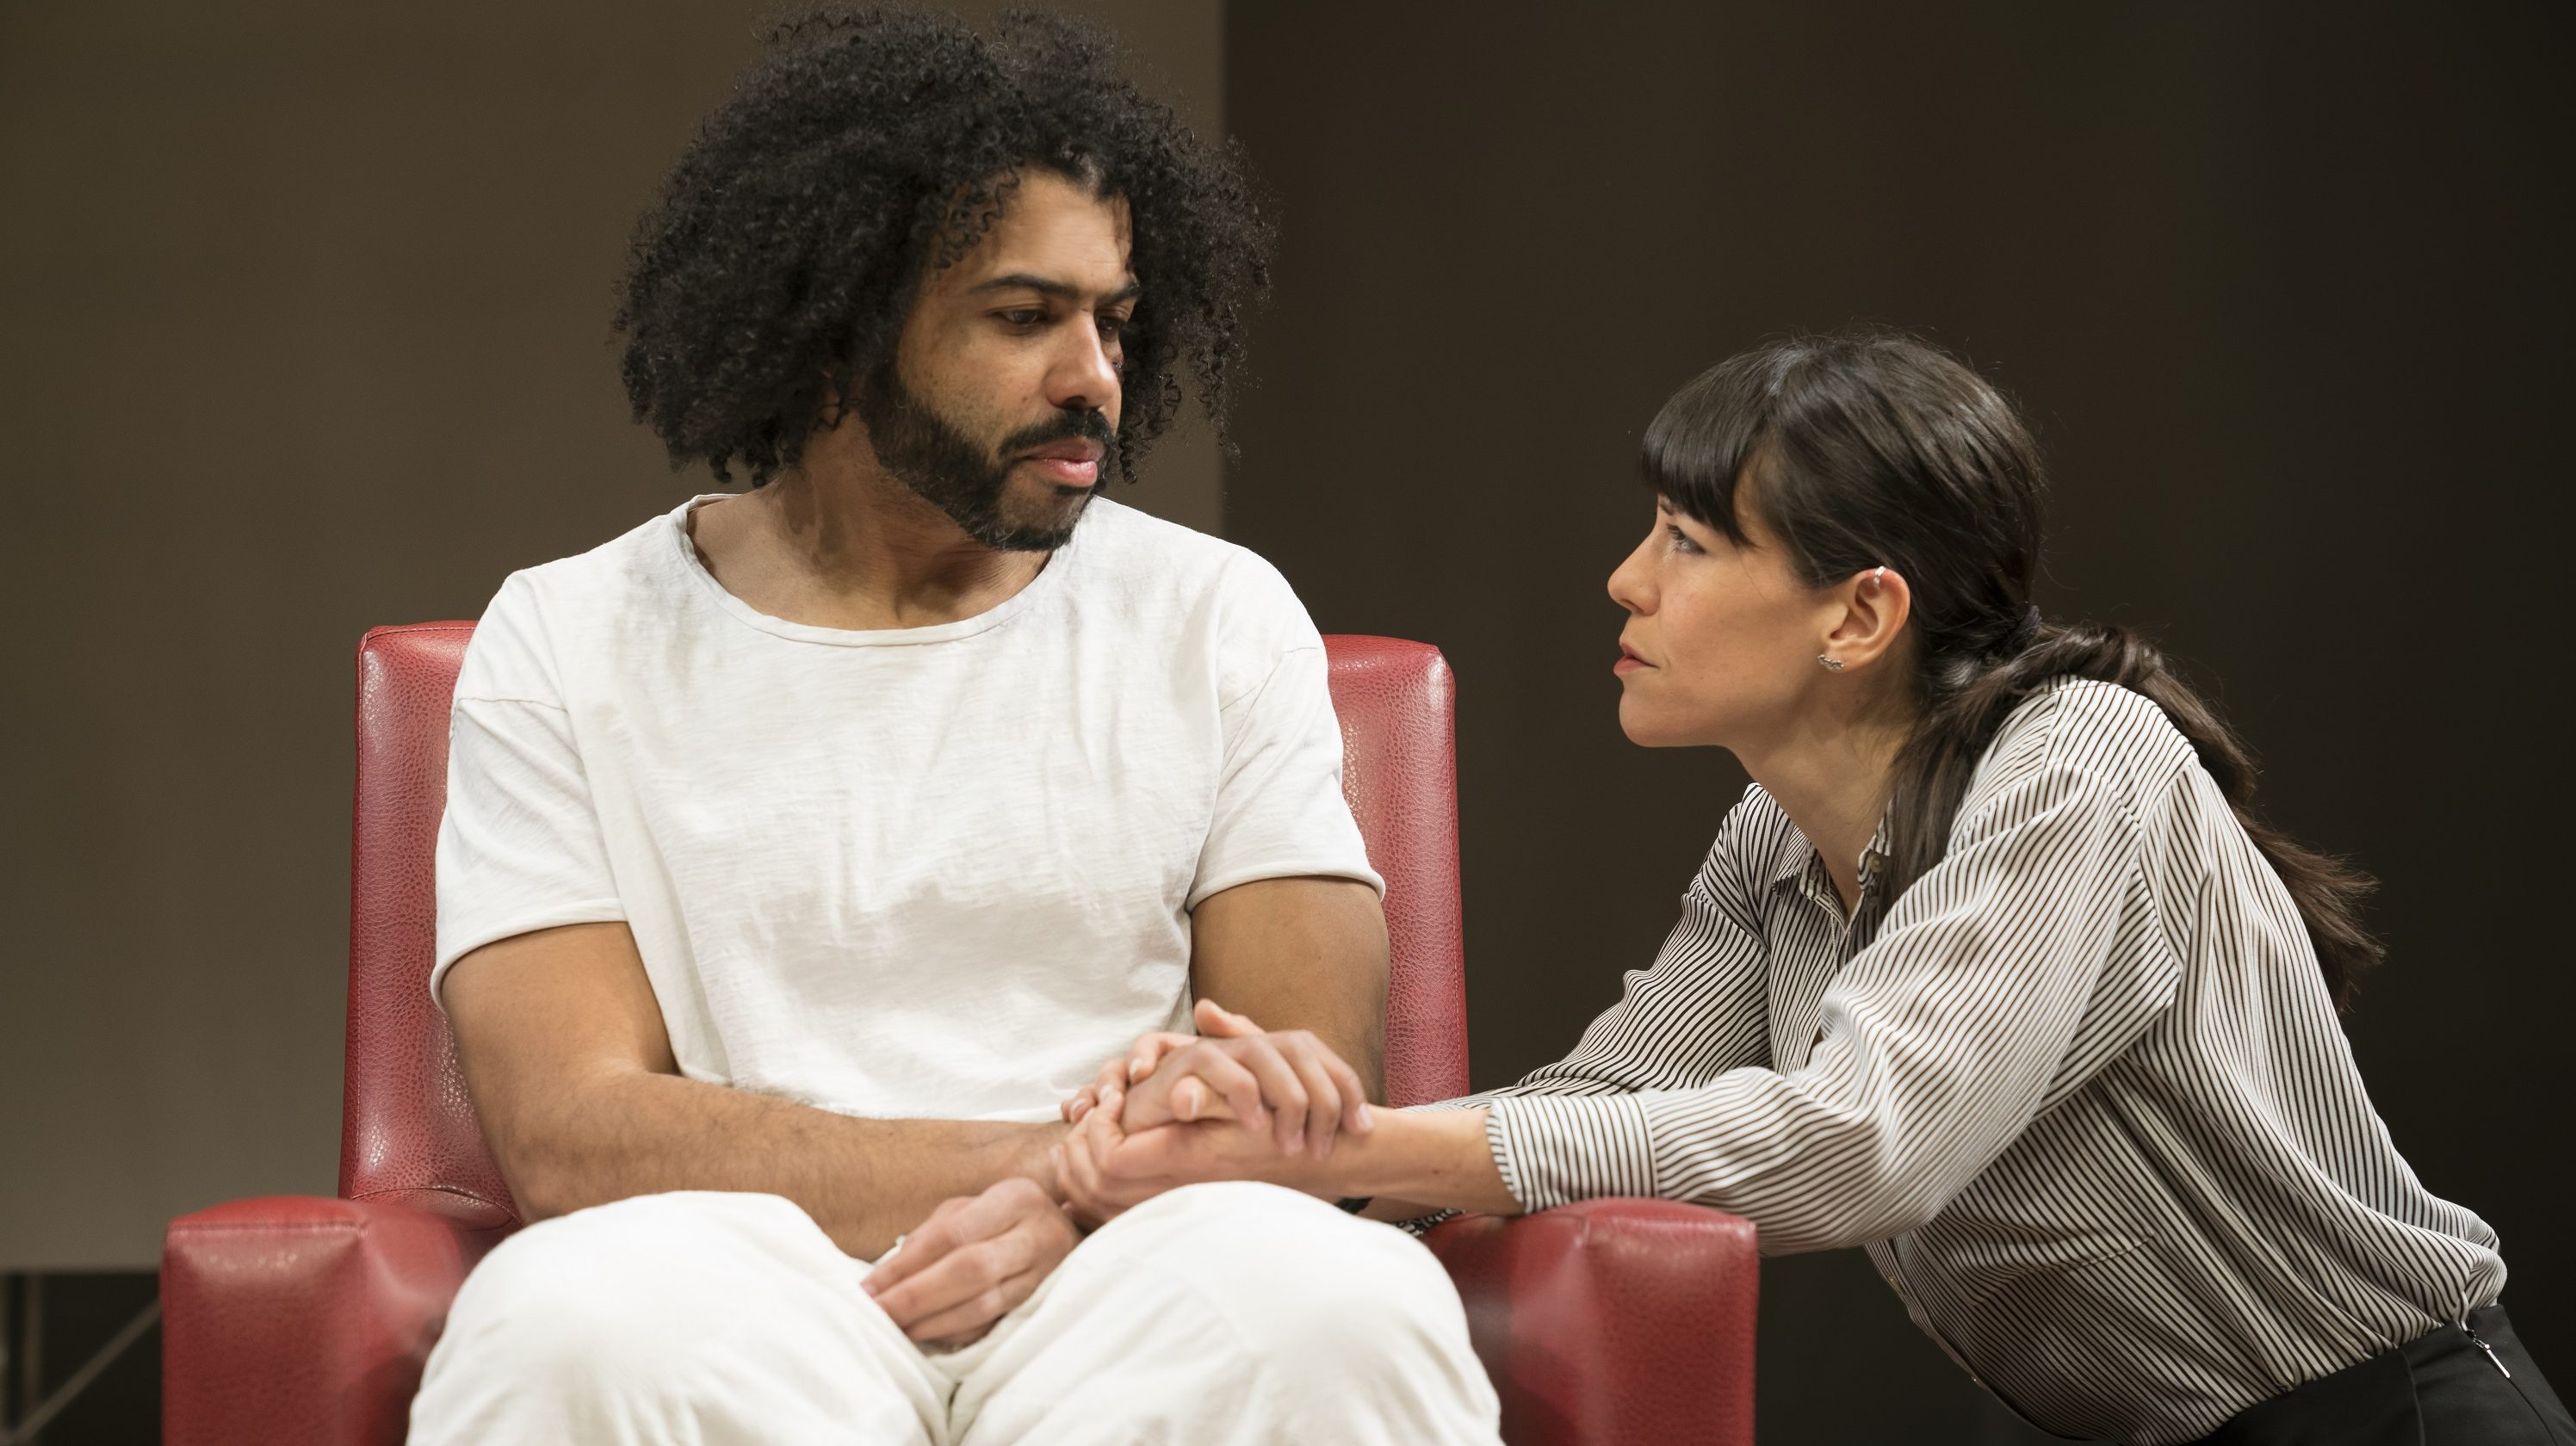 433dd5f69fac3 Daveed Diggs (left) as Leo is comforted by Zoë Winters (right) as his  girlfriend Dawn in a scene from White Noise.